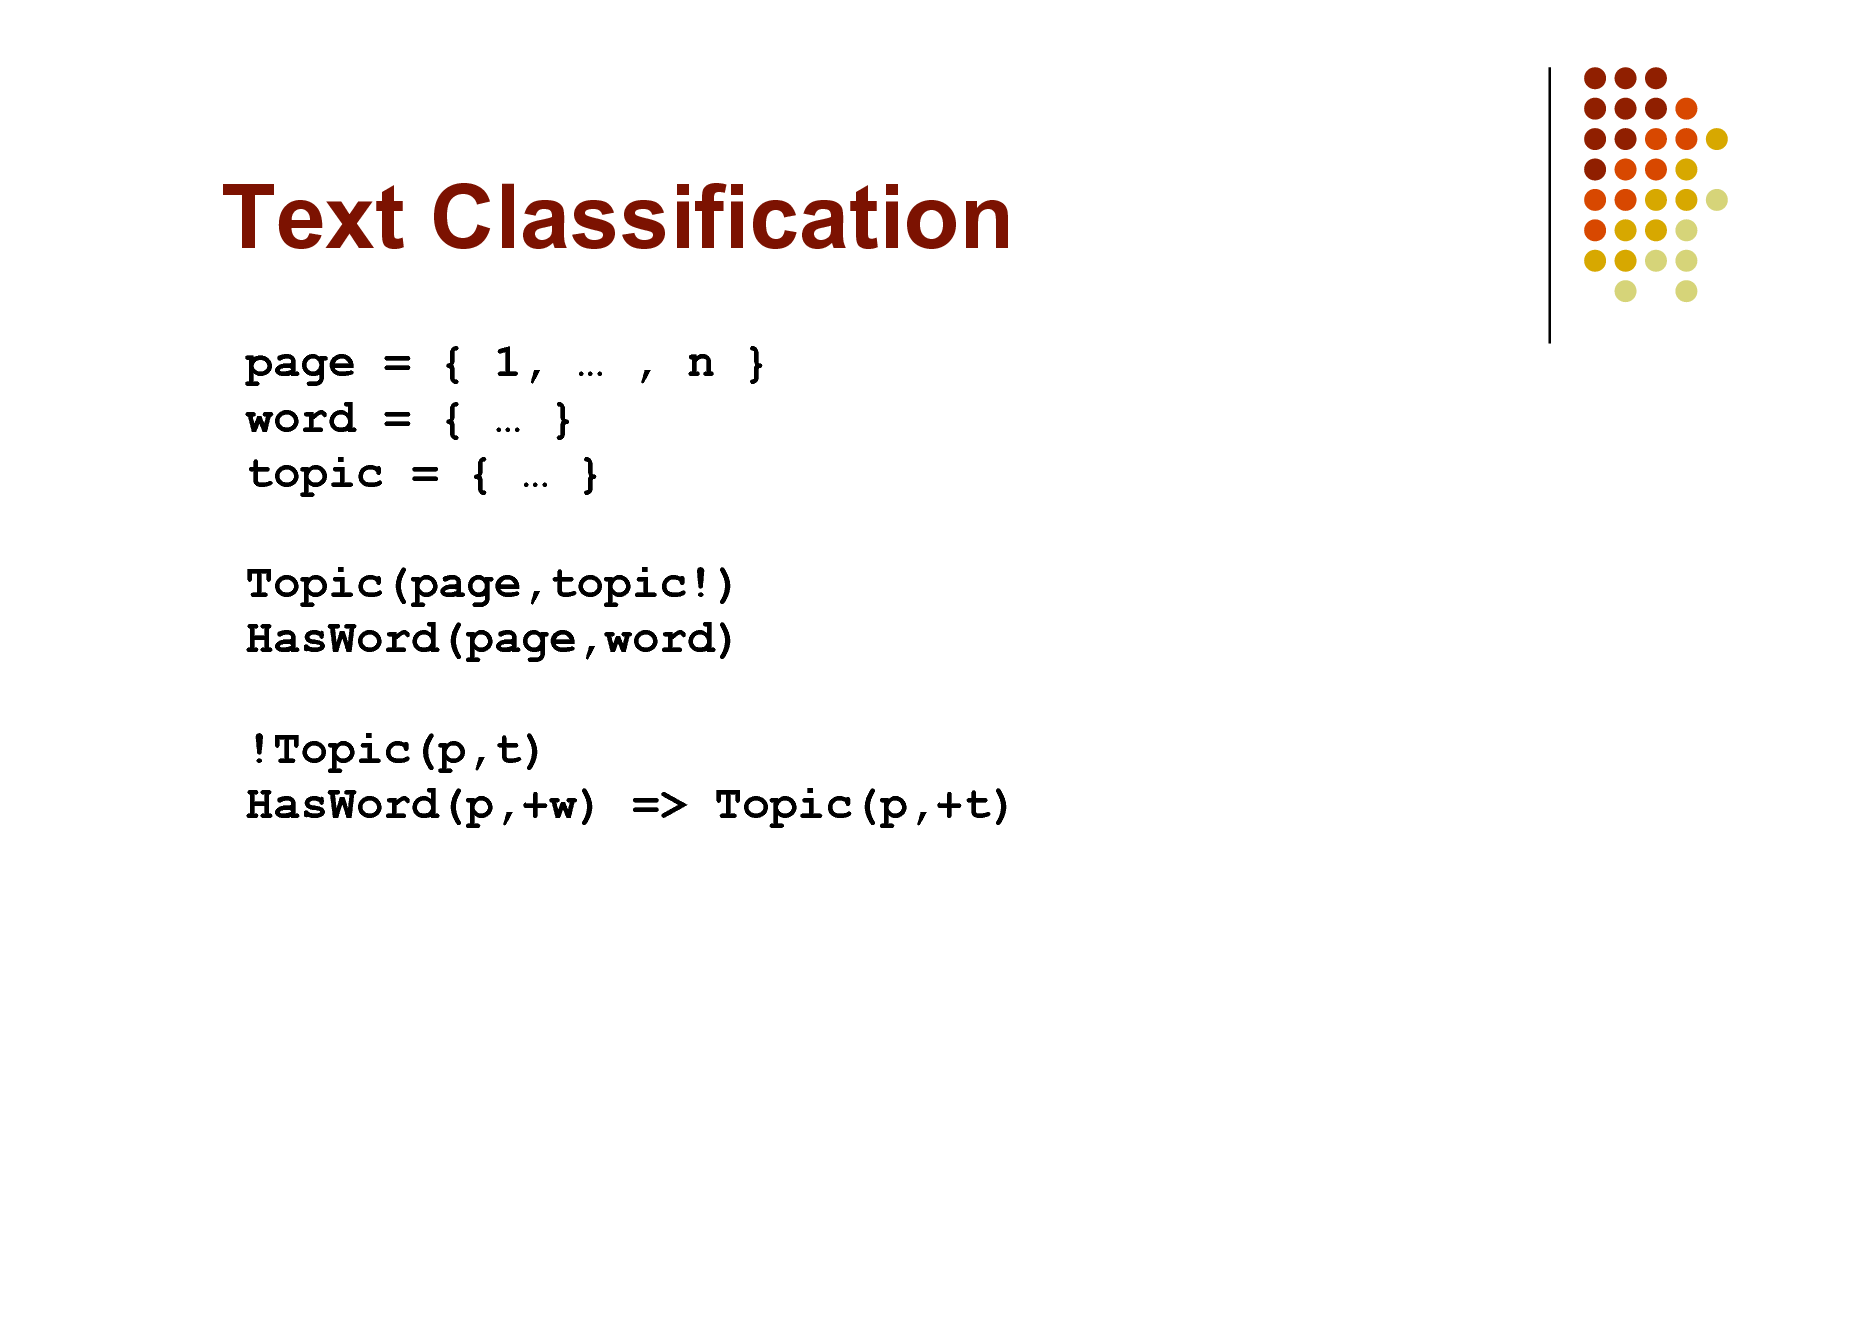 Slide: Text Classification page = { 1,  , n } word = {  } topic = {  } Topic(page,topic!) HasWord(page,word) !Topic(p,t) HasWord(p,+w) => Topic(p,+t)